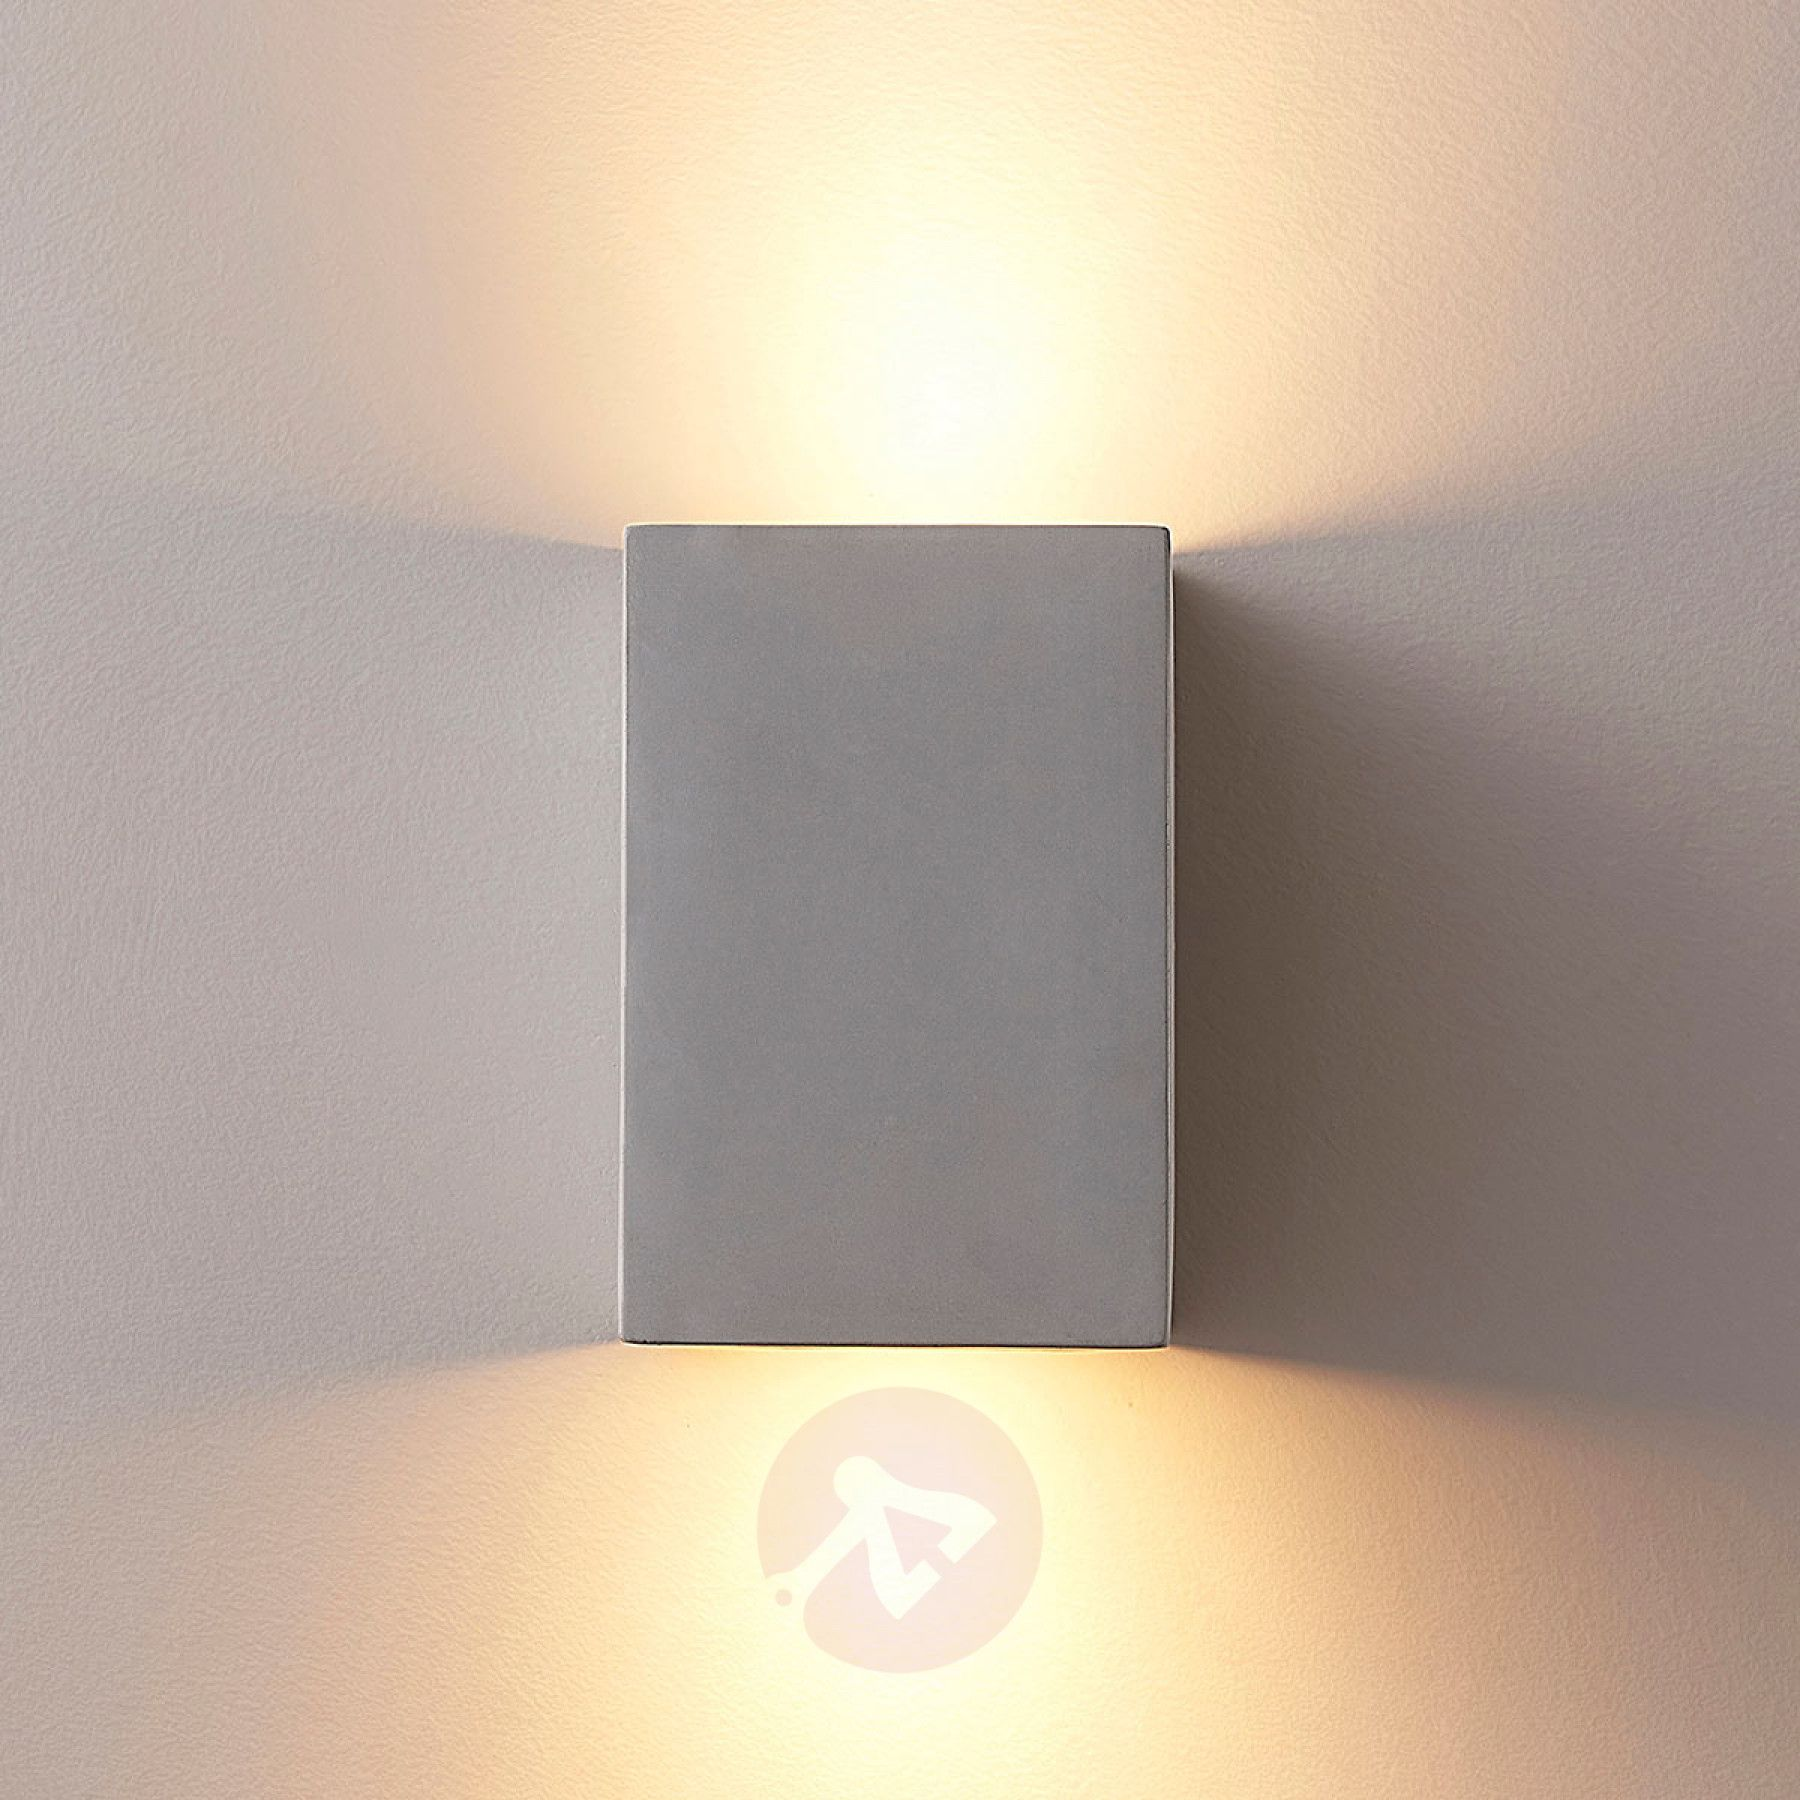 Gerda 2 Flammige Gu10 Wandlampe Aus Beton Zepfenhaus In 2019 Wall Lights Lighting Wall